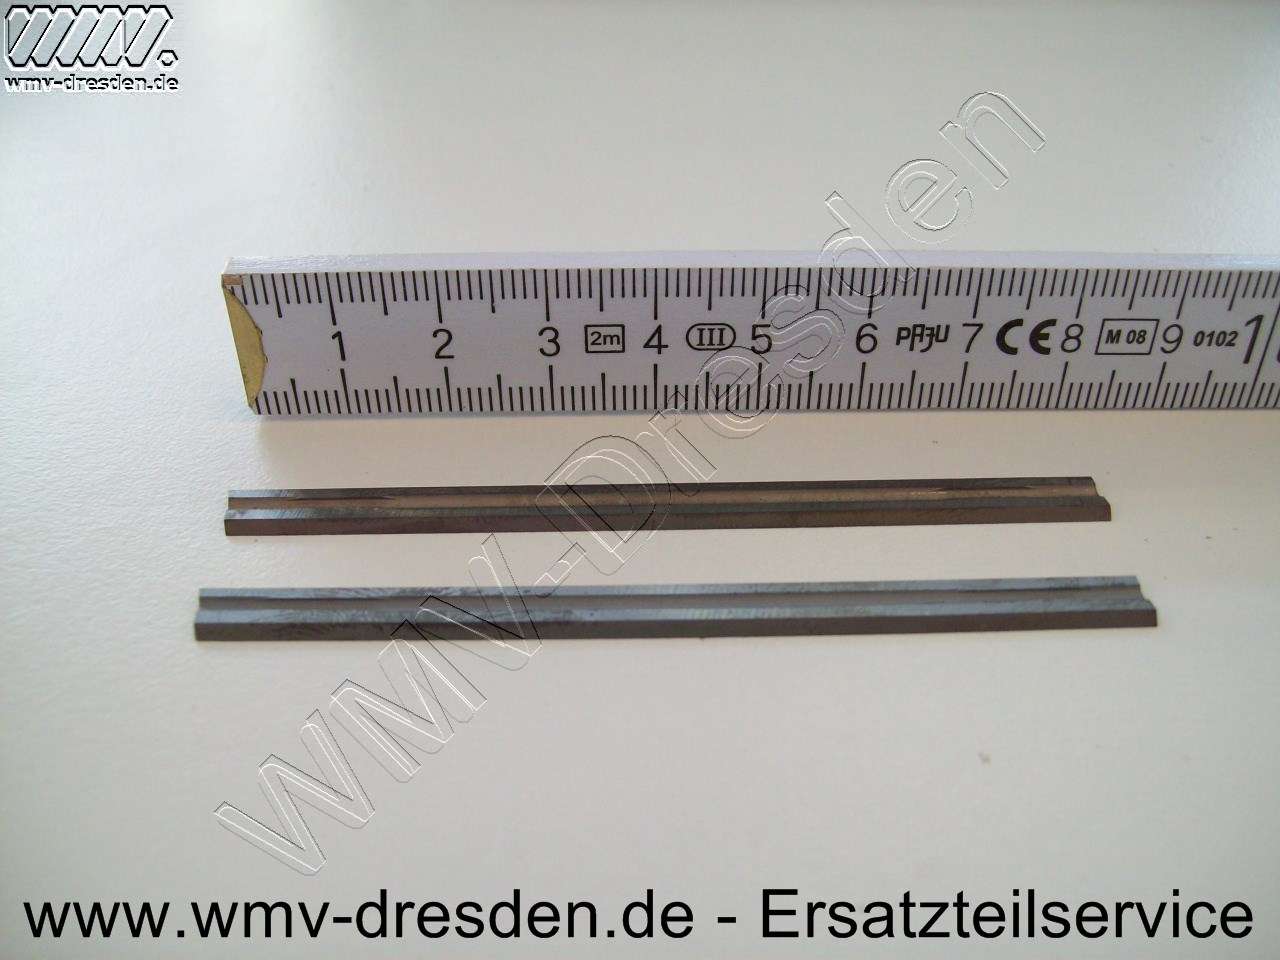 2 Hobelmesser HM 82 mm fine cut